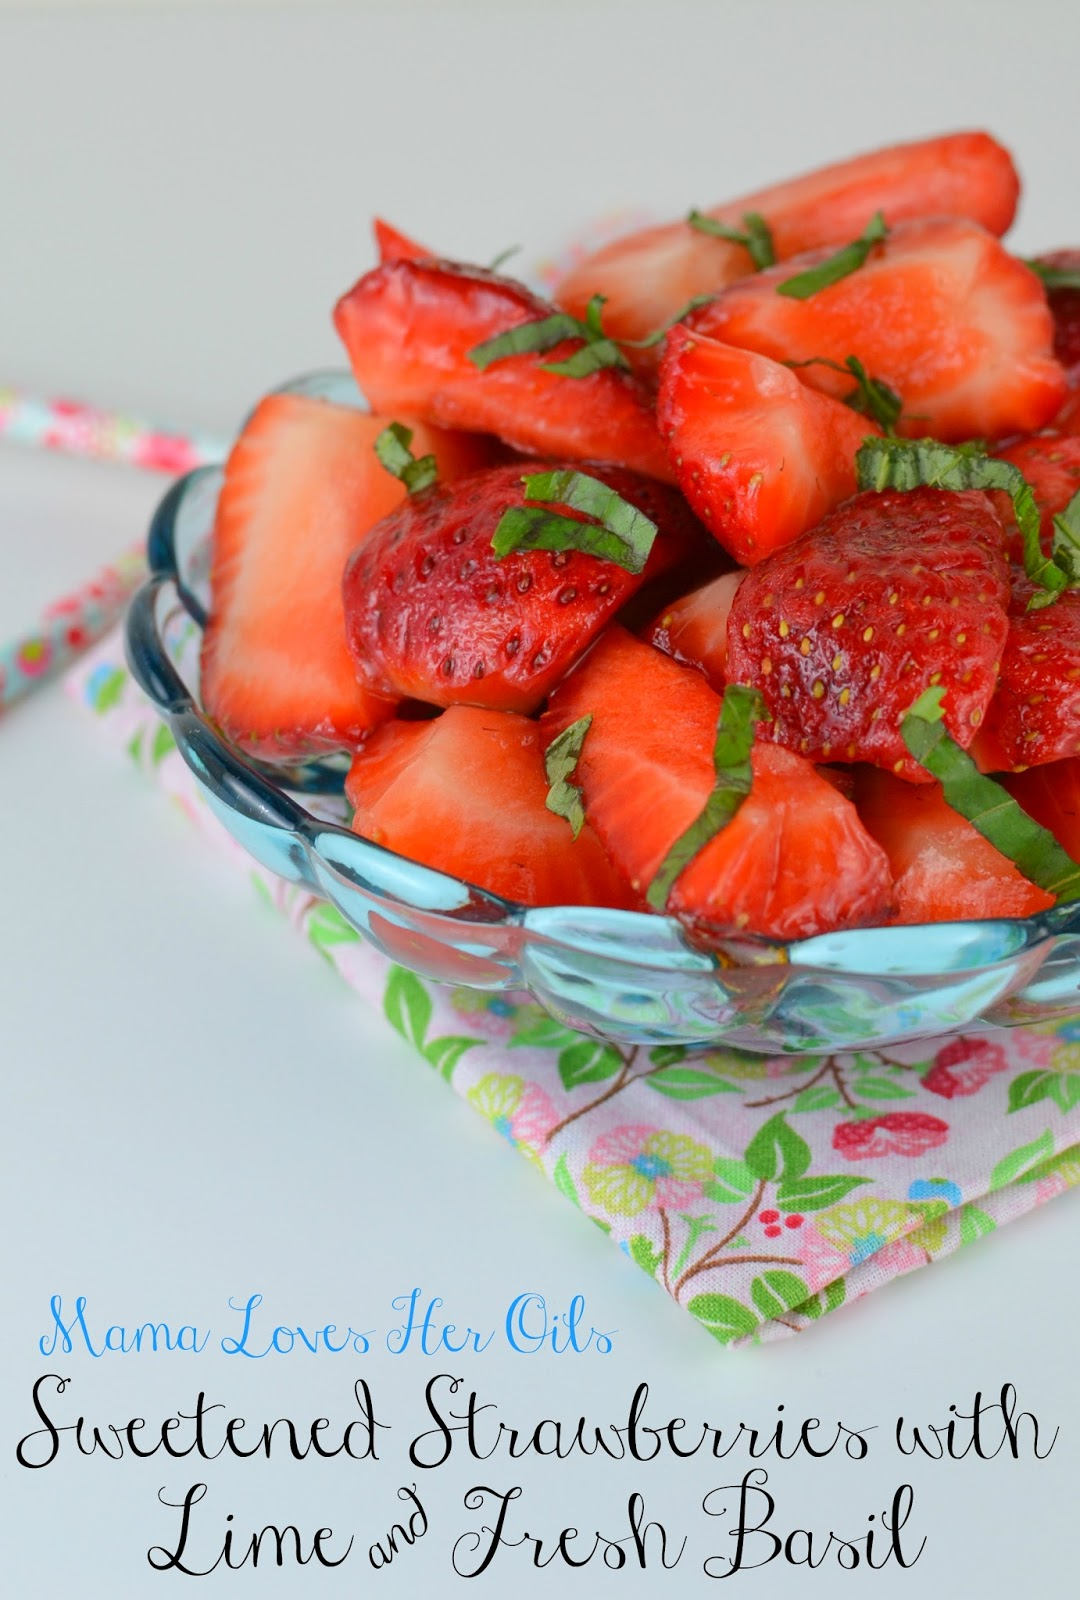 Sweetened fresh strawberries with lime essential oil and fresh basil sweetened fresh strawberries with lime essential oil and fresh basil recipe forumfinder Image collections